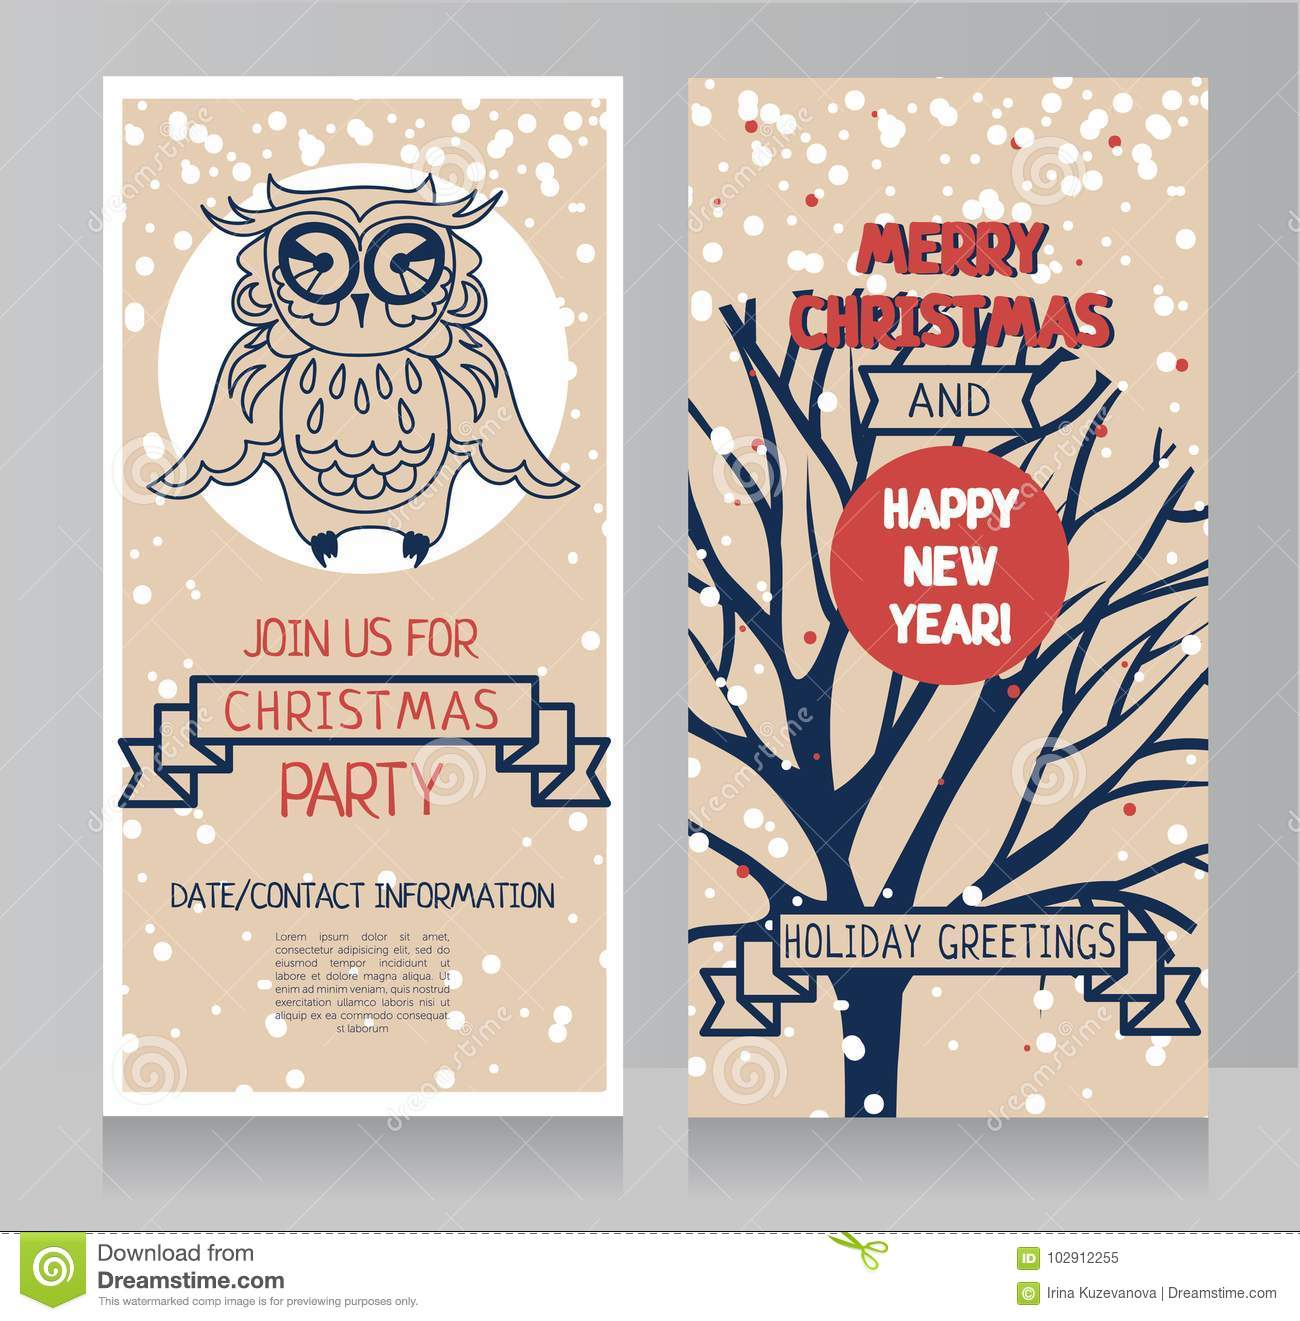 Greeting Cards For Christmas With Cute Owl And Snow Stock Vector ...